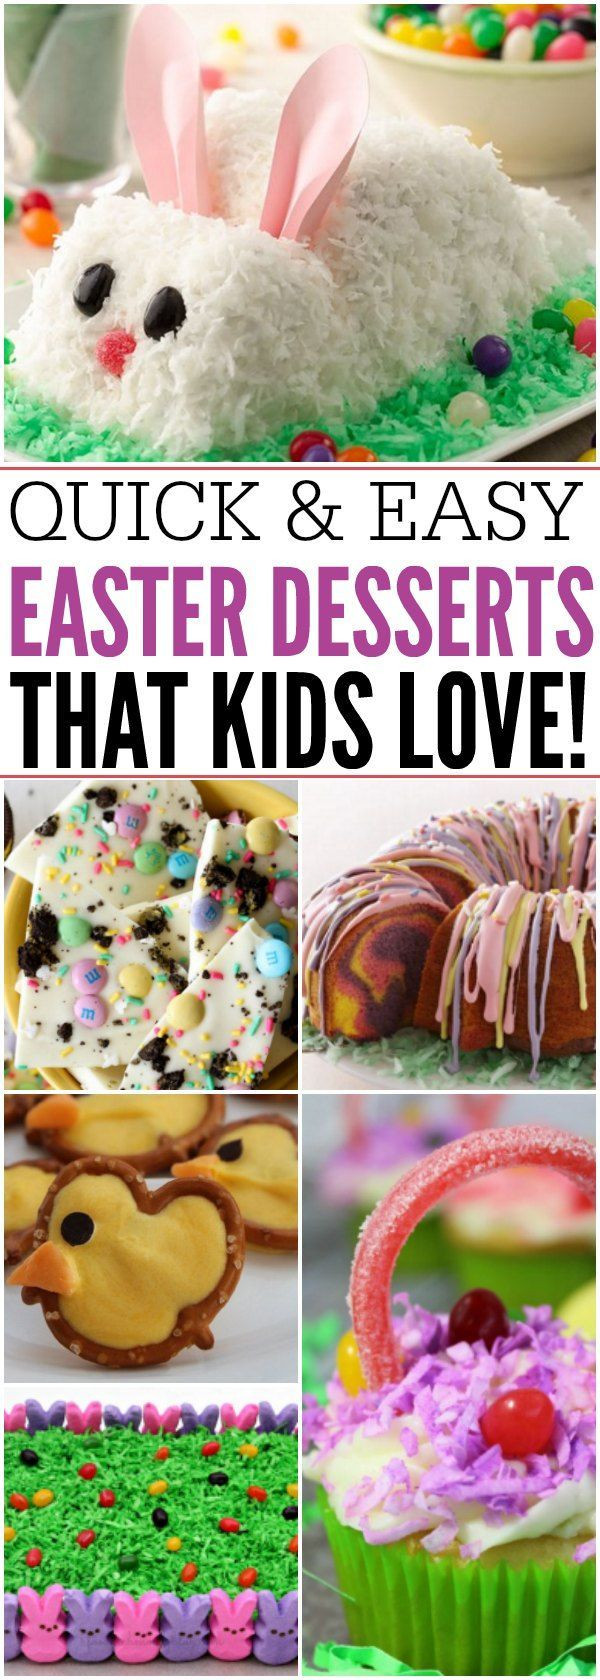 Easy Easter Dessert  Best 25 Easy easter desserts ideas on Pinterest